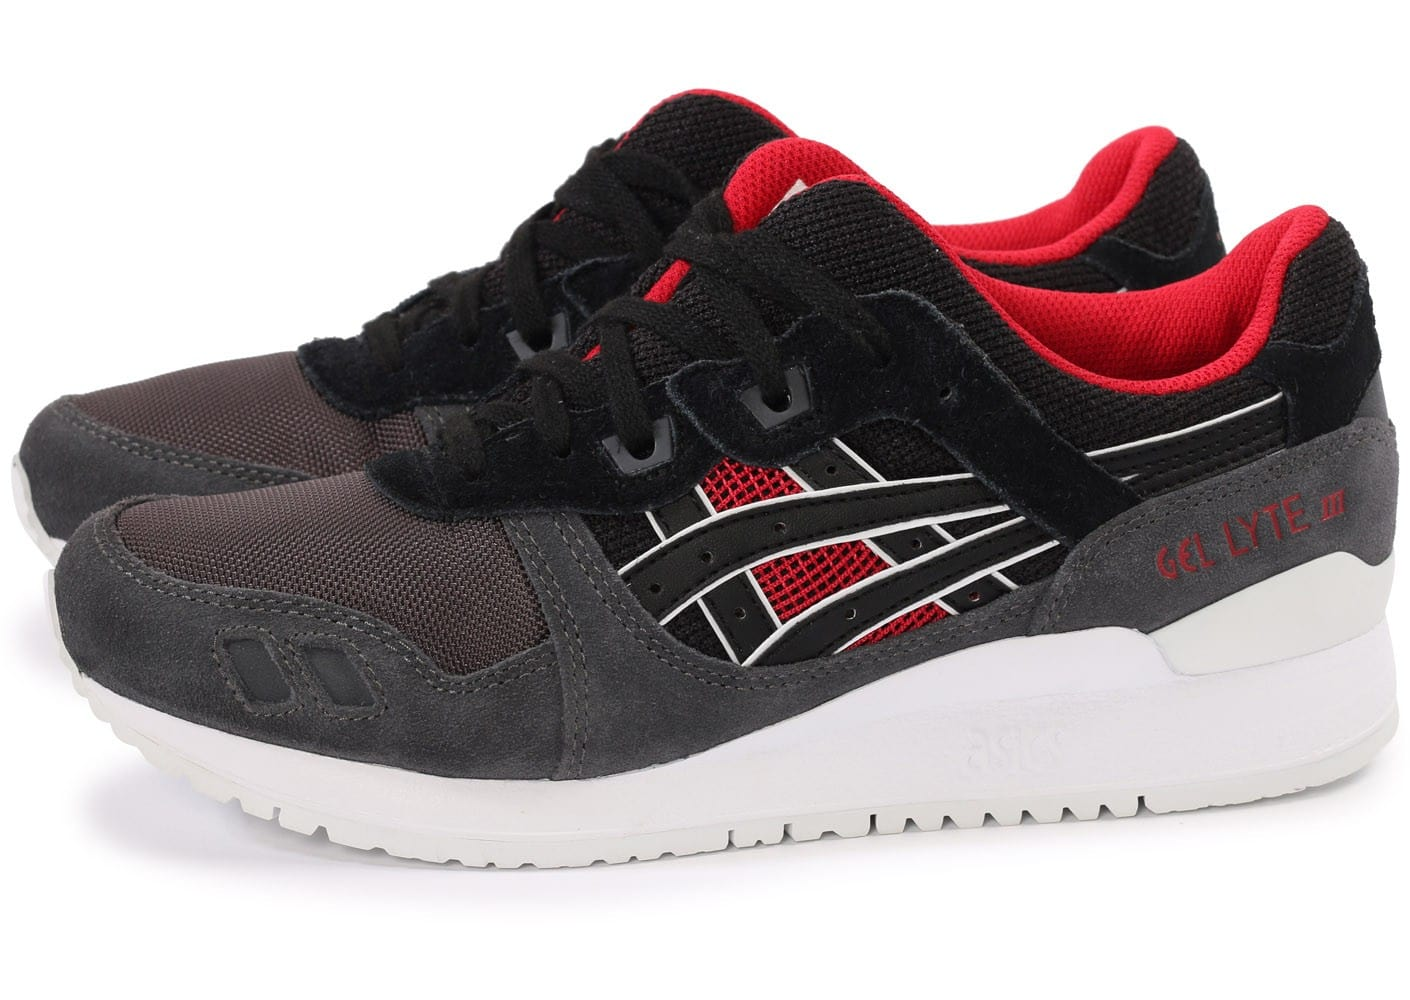 asics gel lyte iii noir et rouge chaussures homme chausport. Black Bedroom Furniture Sets. Home Design Ideas